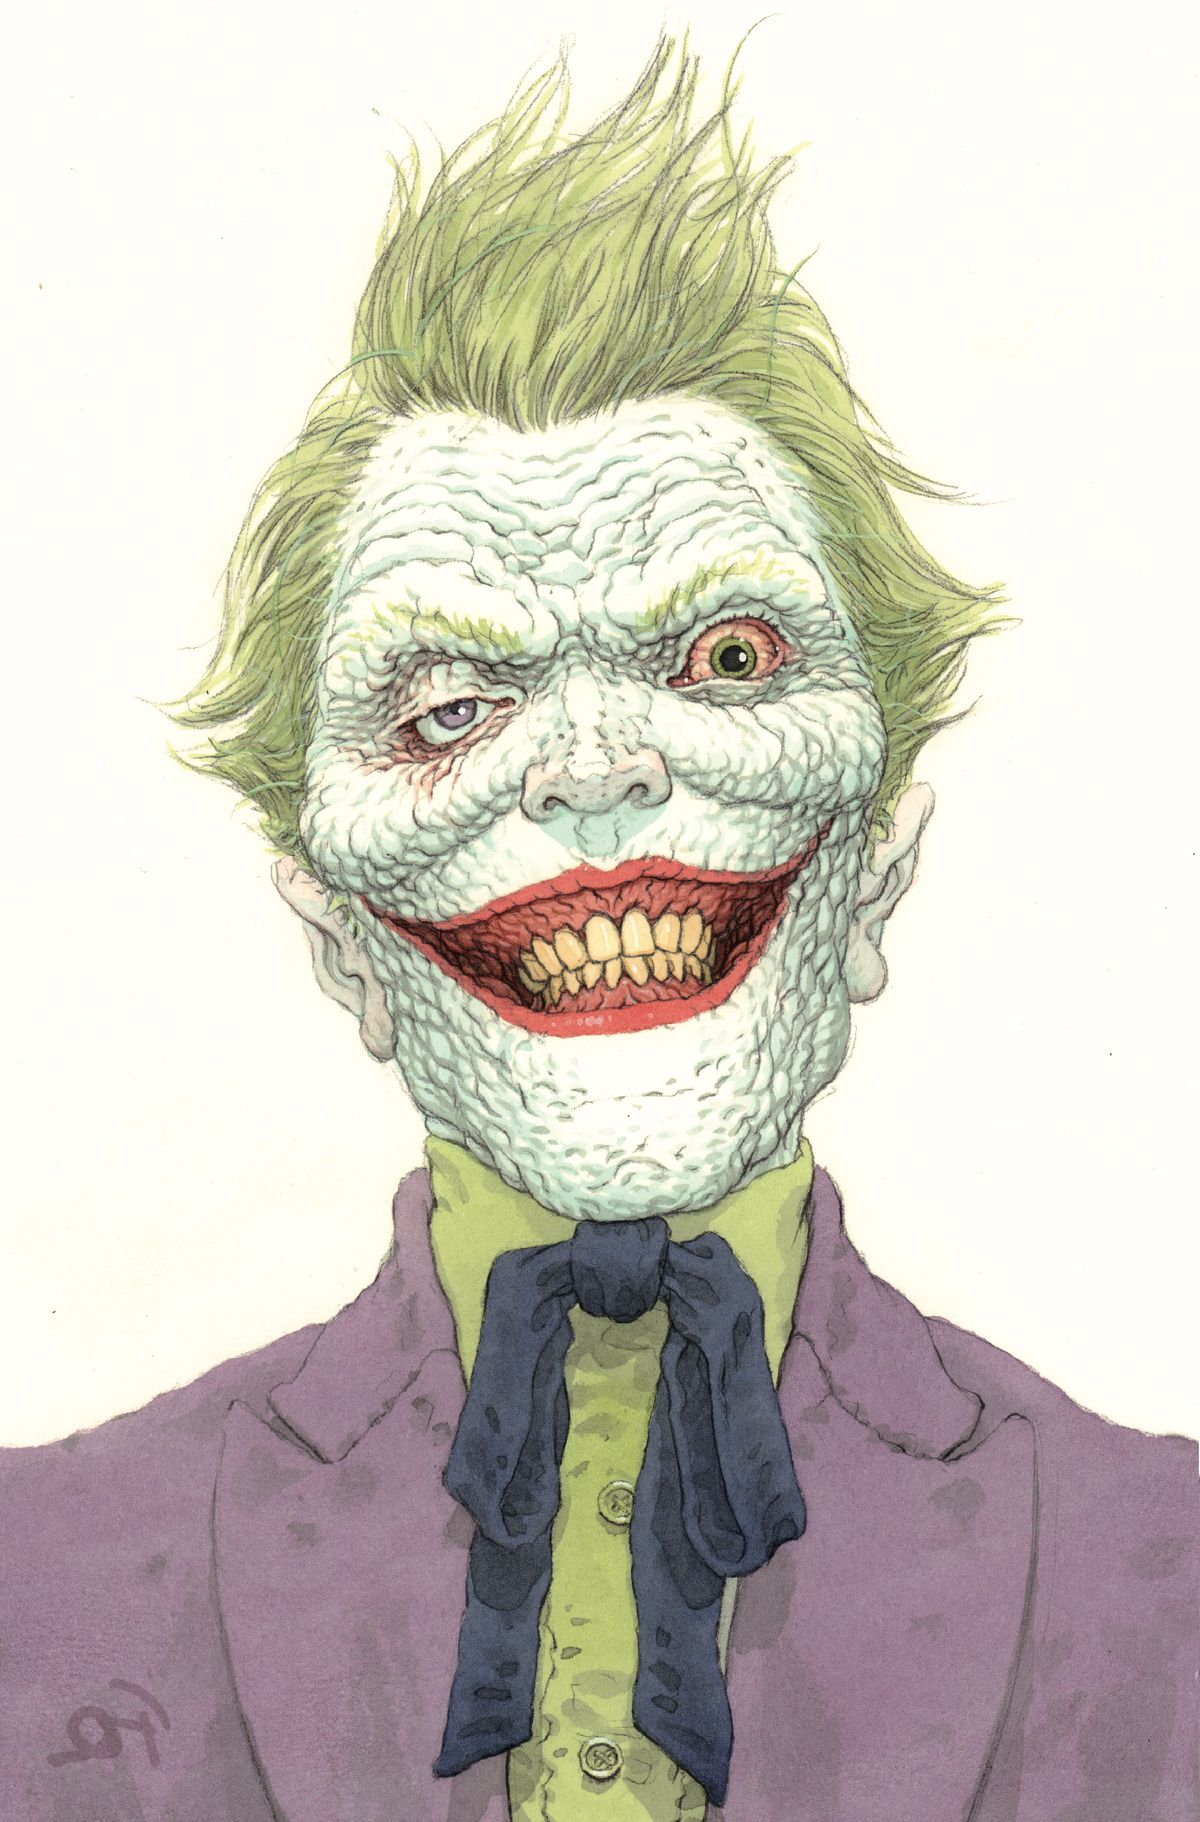 The Joker grins at the viewer in a variant cover for The Joker #1, DC Comics (2021).